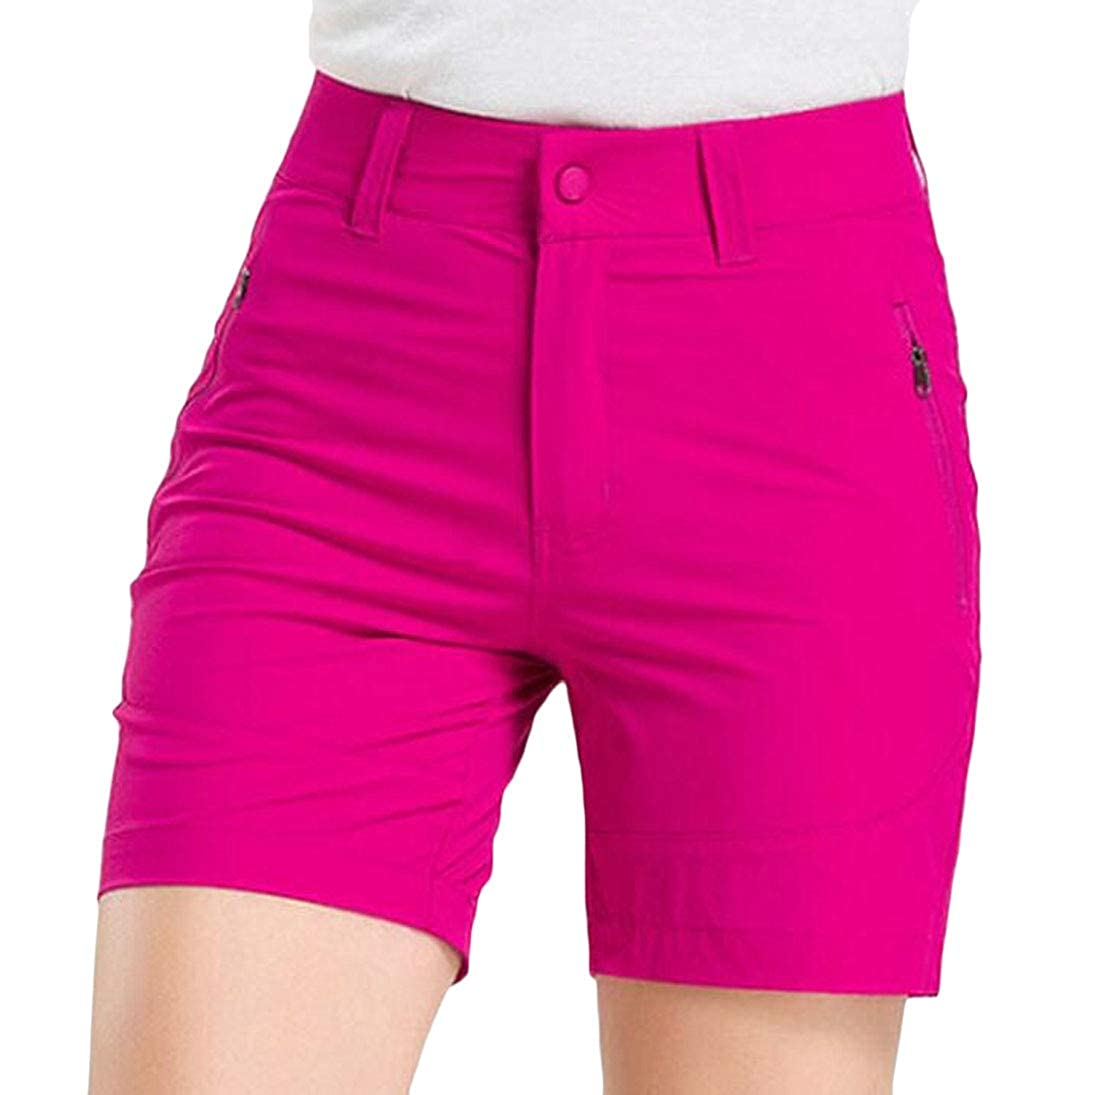 Hajotrawa Womens Summer Shorts Fast Dry Sport Outdoor High Waist Shorts